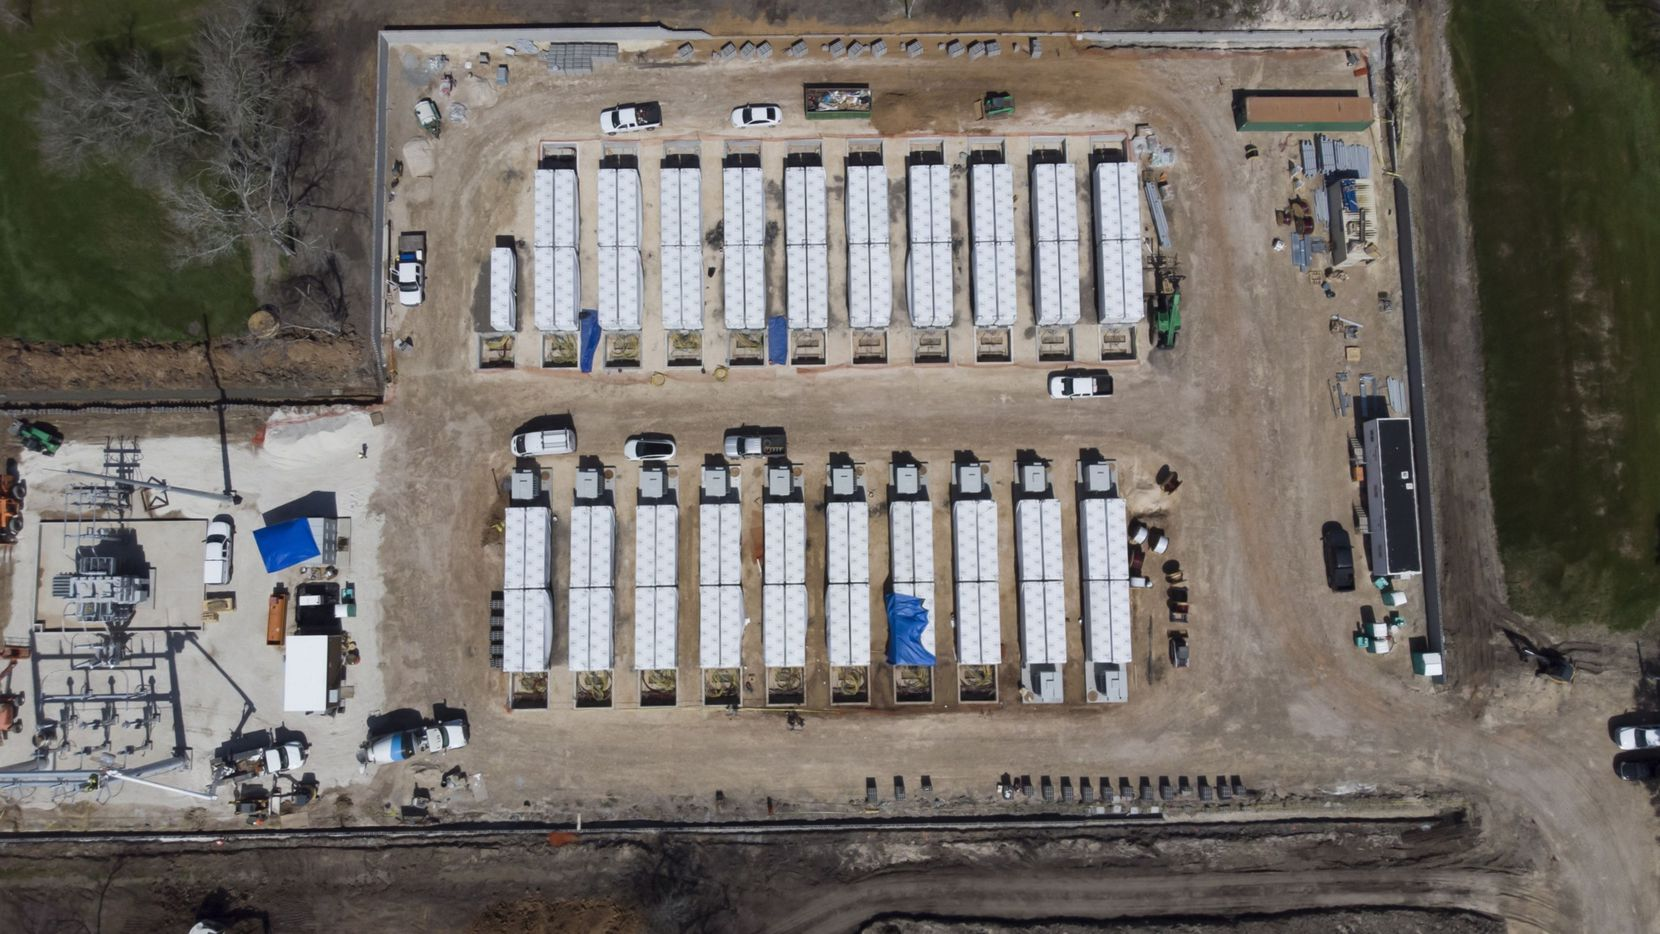 The Gambit Energy Storage Park under construction in Angleton on March 4. A Tesla Inc. subsidiary registered as Gambit Energy Storage LLC is quietly building a more than 100 megawatt energy storage project in Angleton,  a town roughly 40 miles south of Houston.